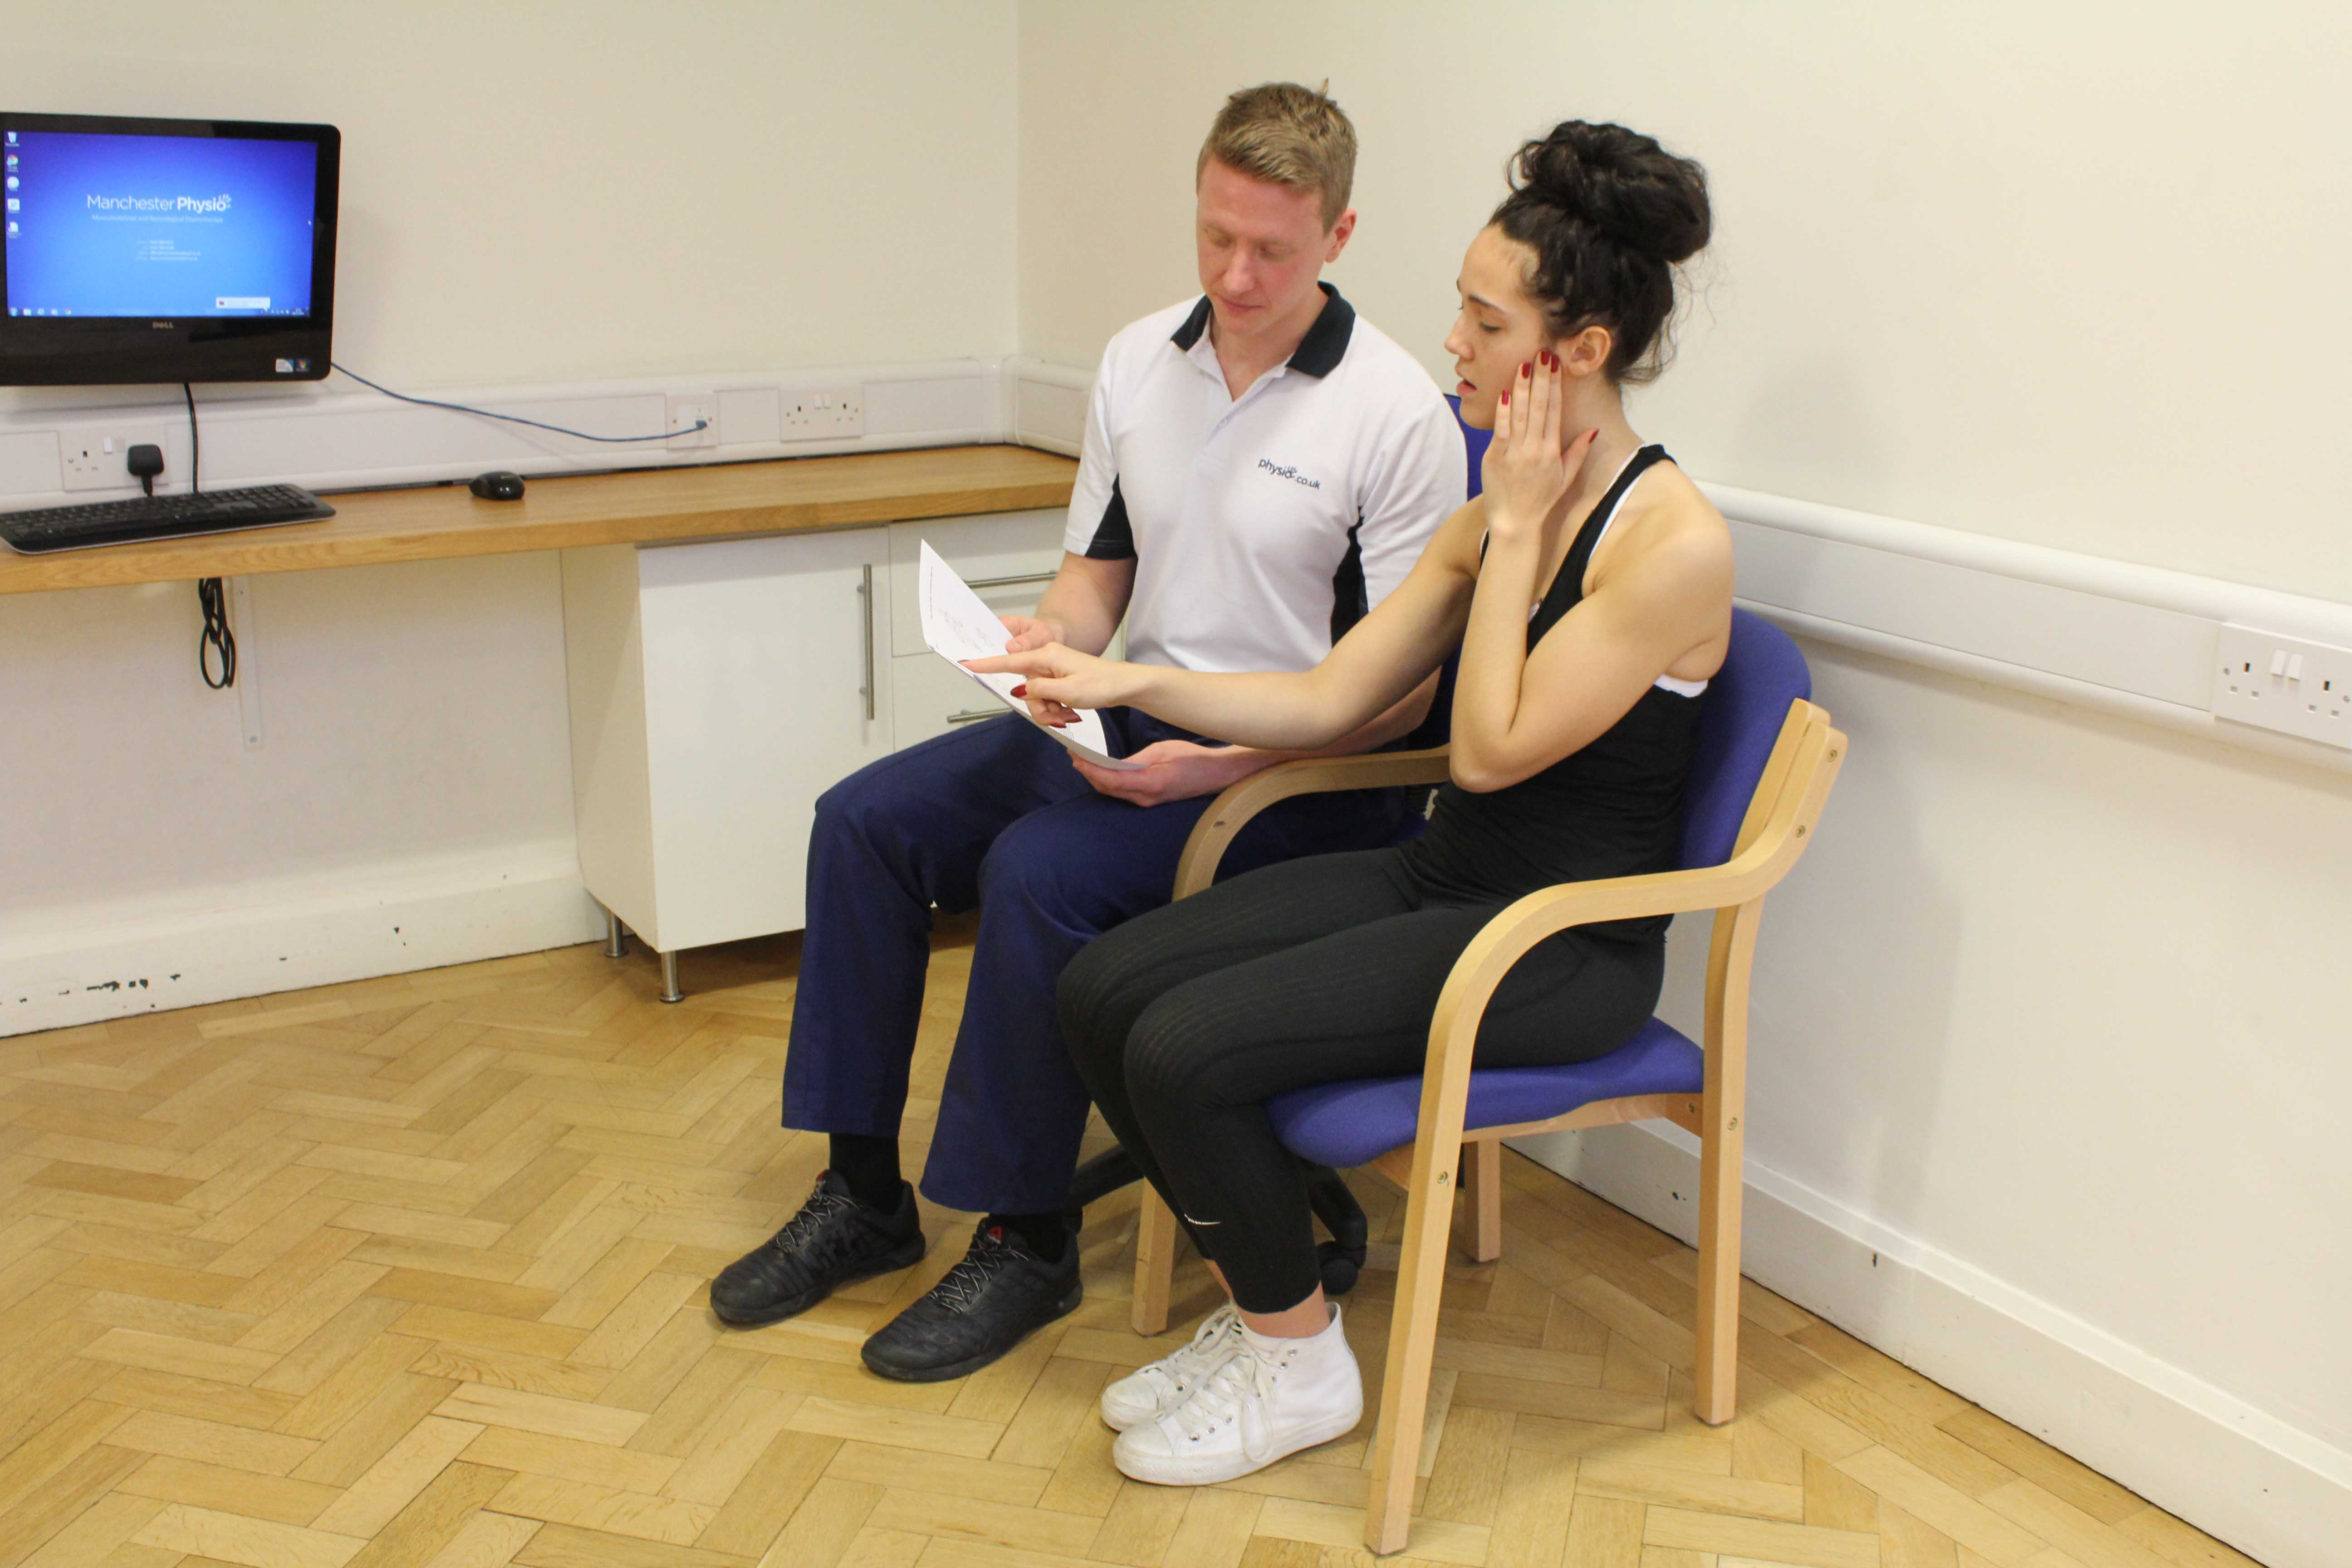 Experienced physiotherapist supplying advice to the client about their condition